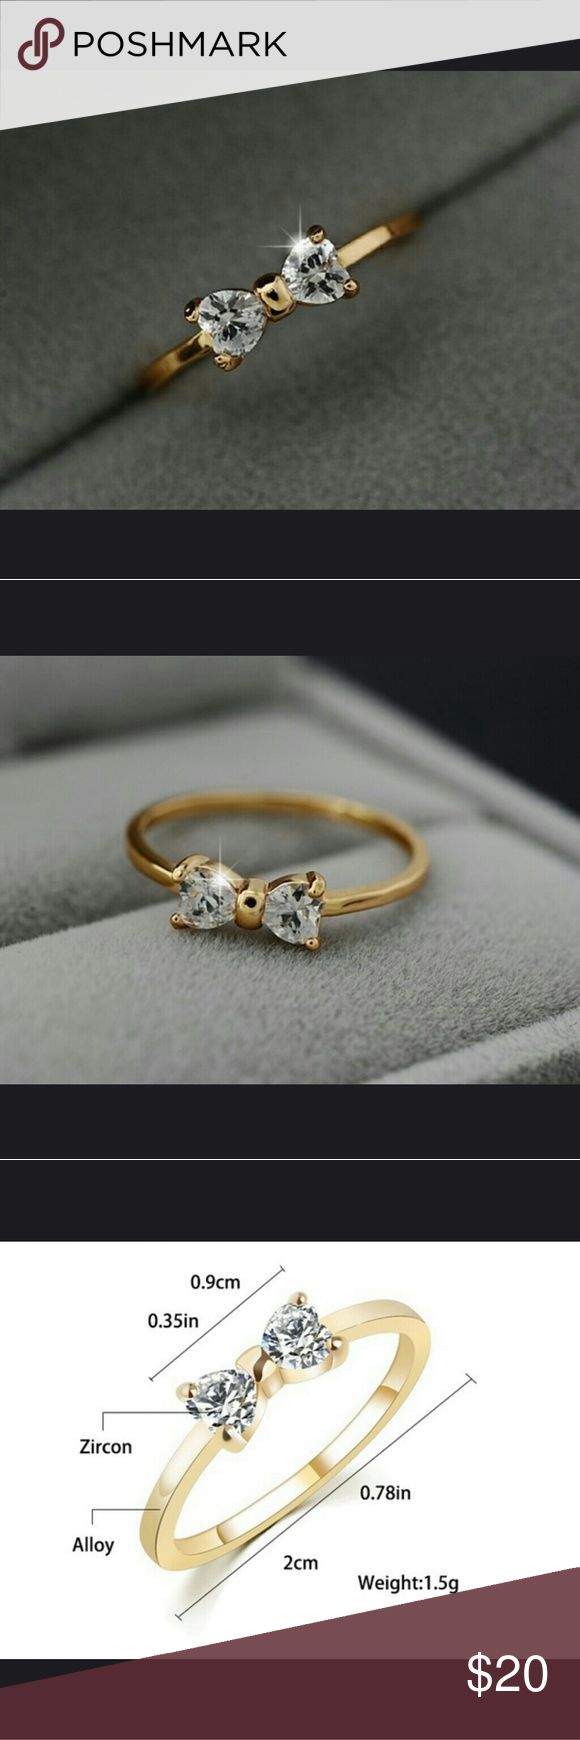 Bow design ring Ornate bow ring with zircon YITAU Jewelry Rings